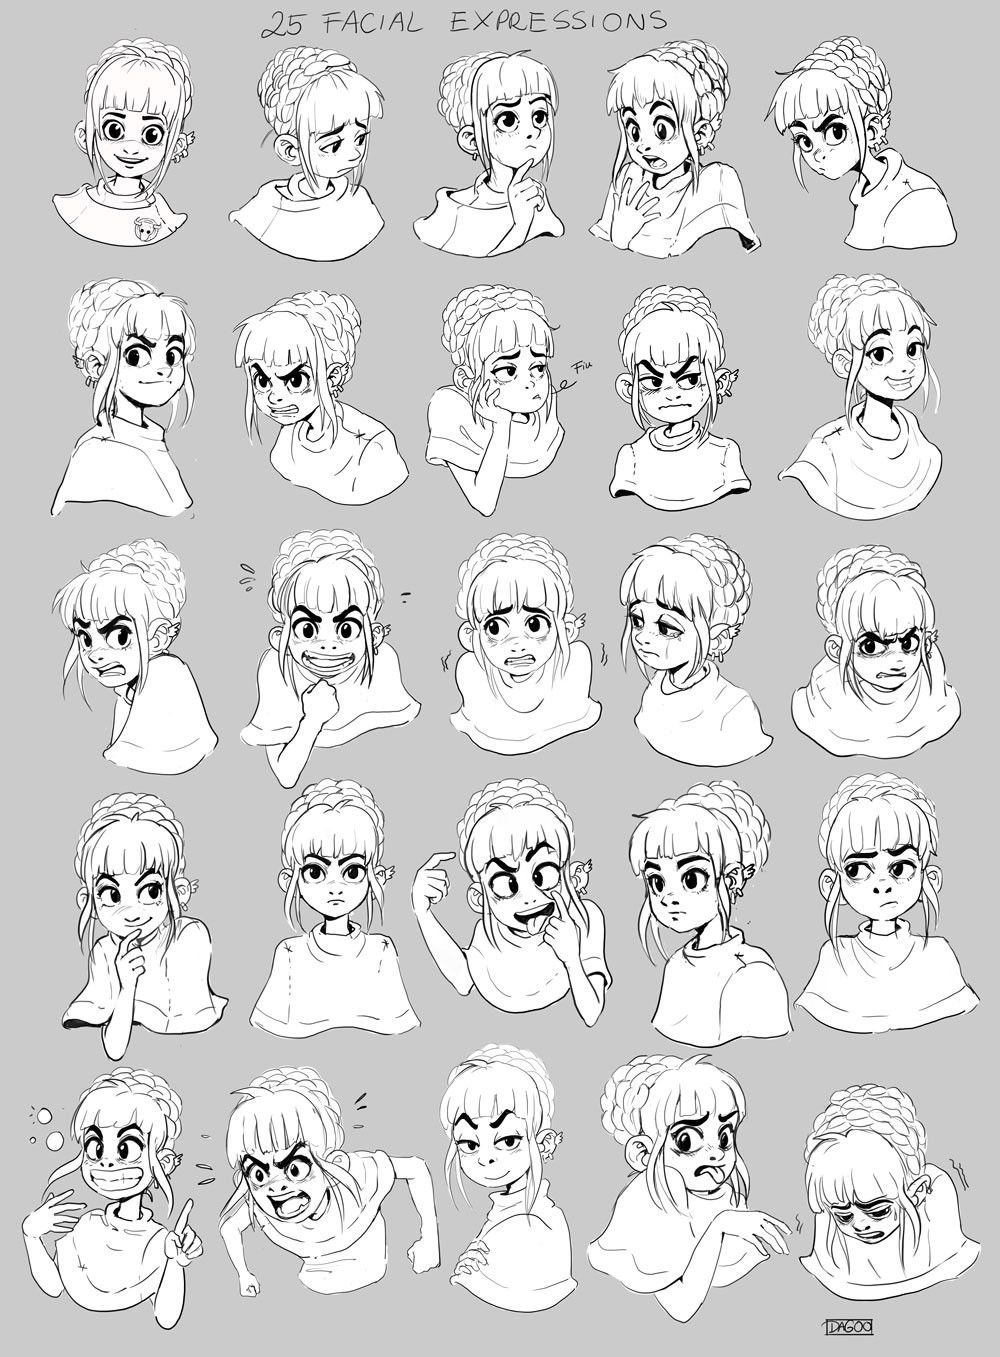 1000x1357 25 Facial Expressions , Dagmara Darsicka On Artstation